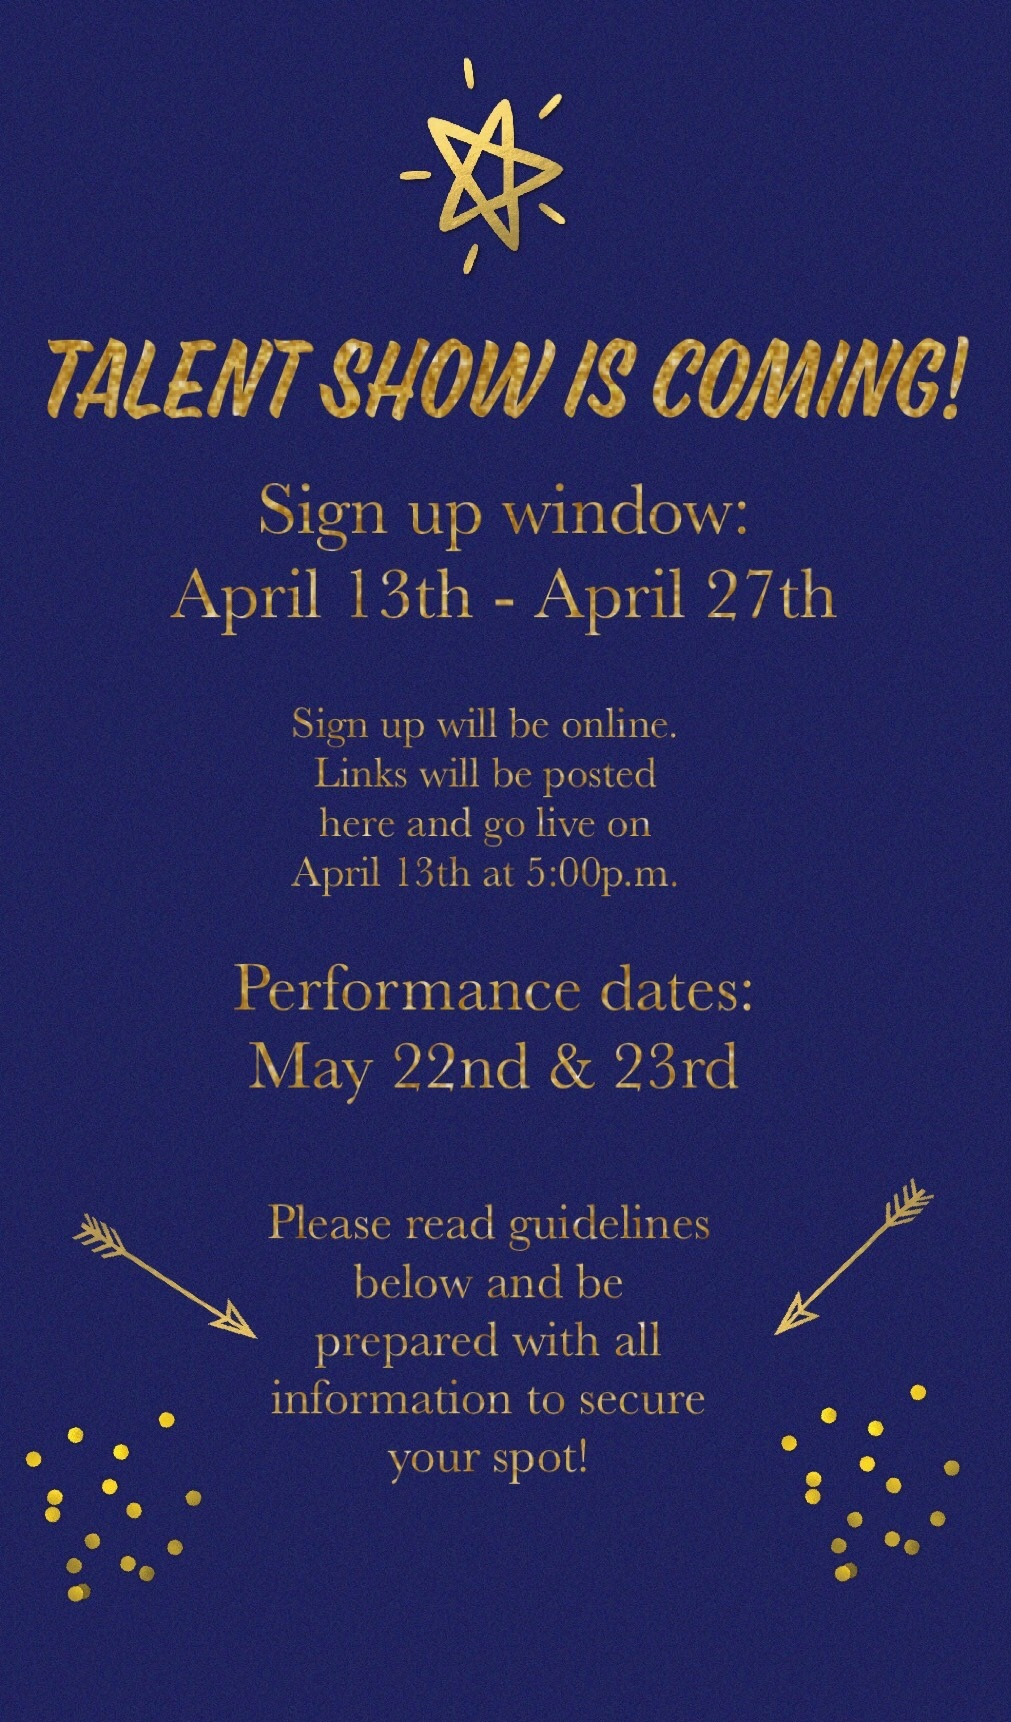 Talent Show Sign-Up!